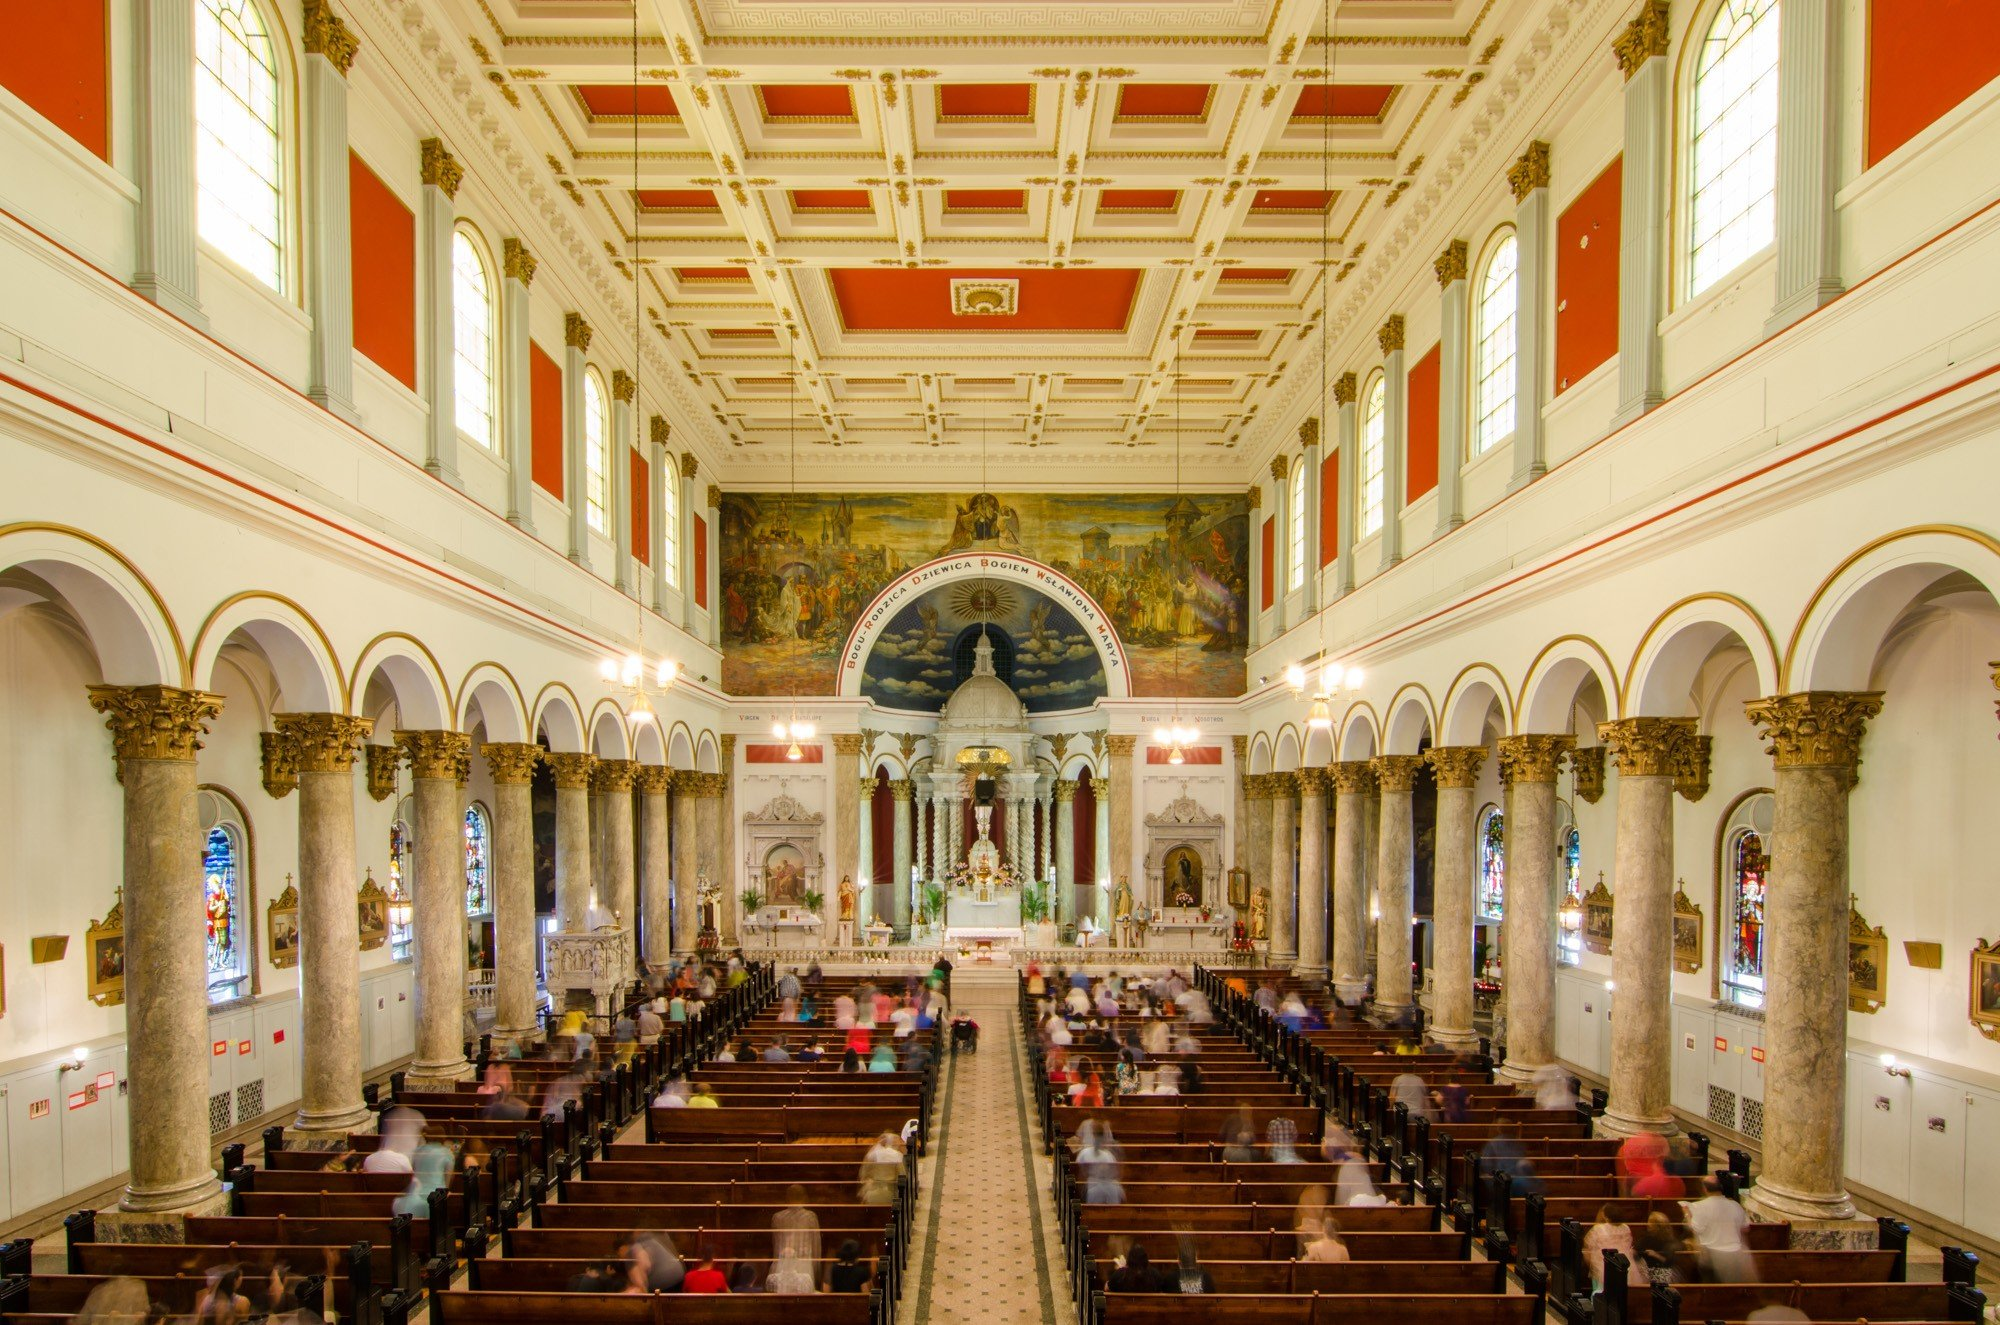 Each side of the church's interior is framed by 12 marble columns. At the front and center of the church stands a statue of Our Lady of Częstochowa, the Polish Virgin Mary.